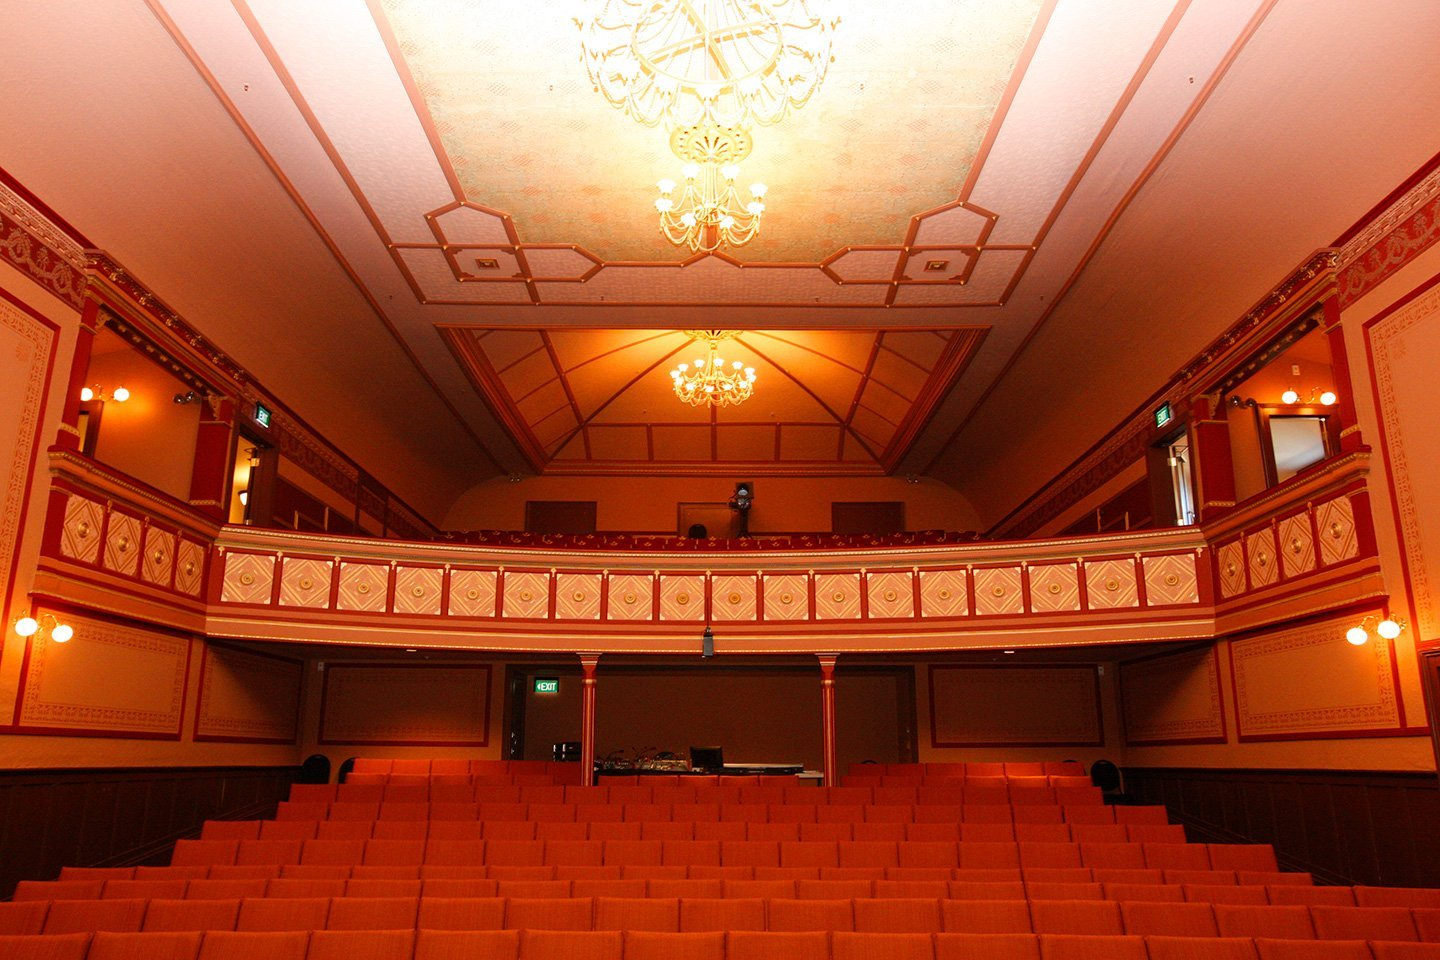 Interior view of a hall